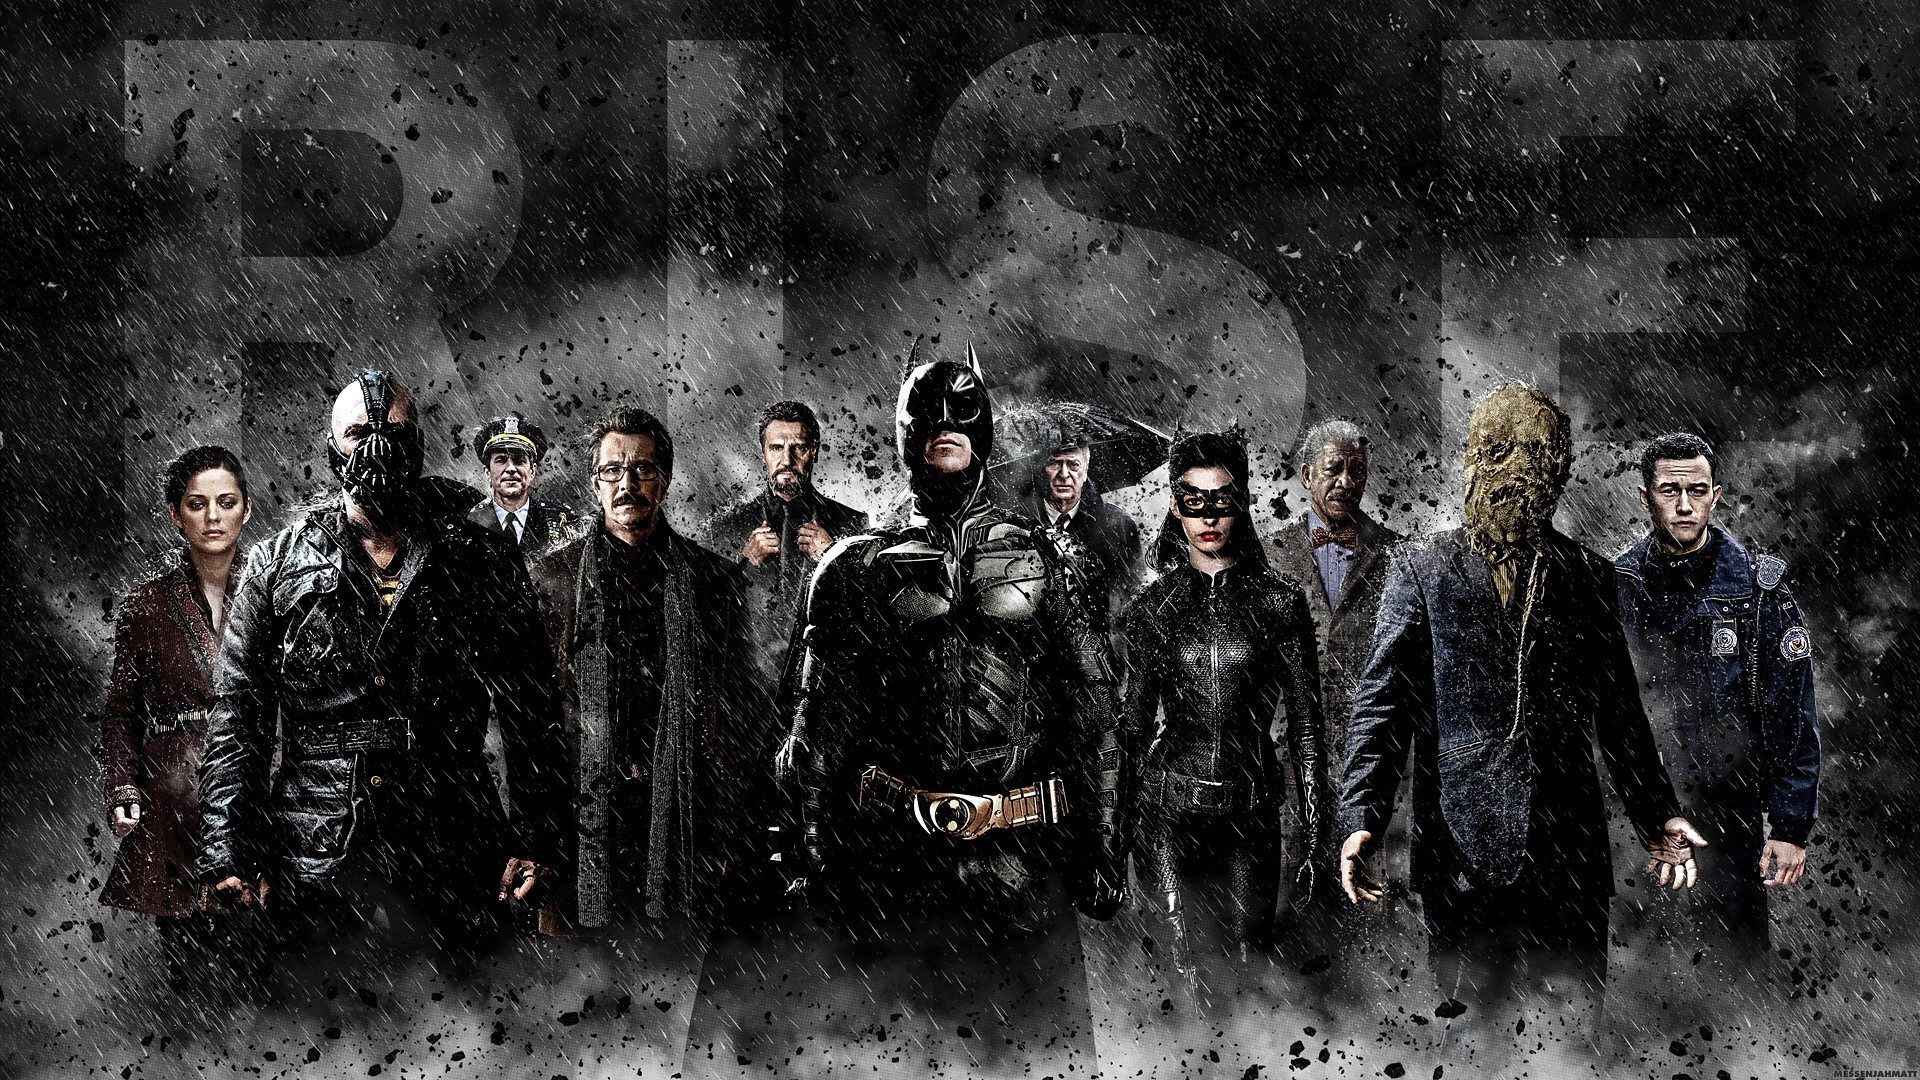 The Dark Knight Rises Wallpaper Full Hd Id 725